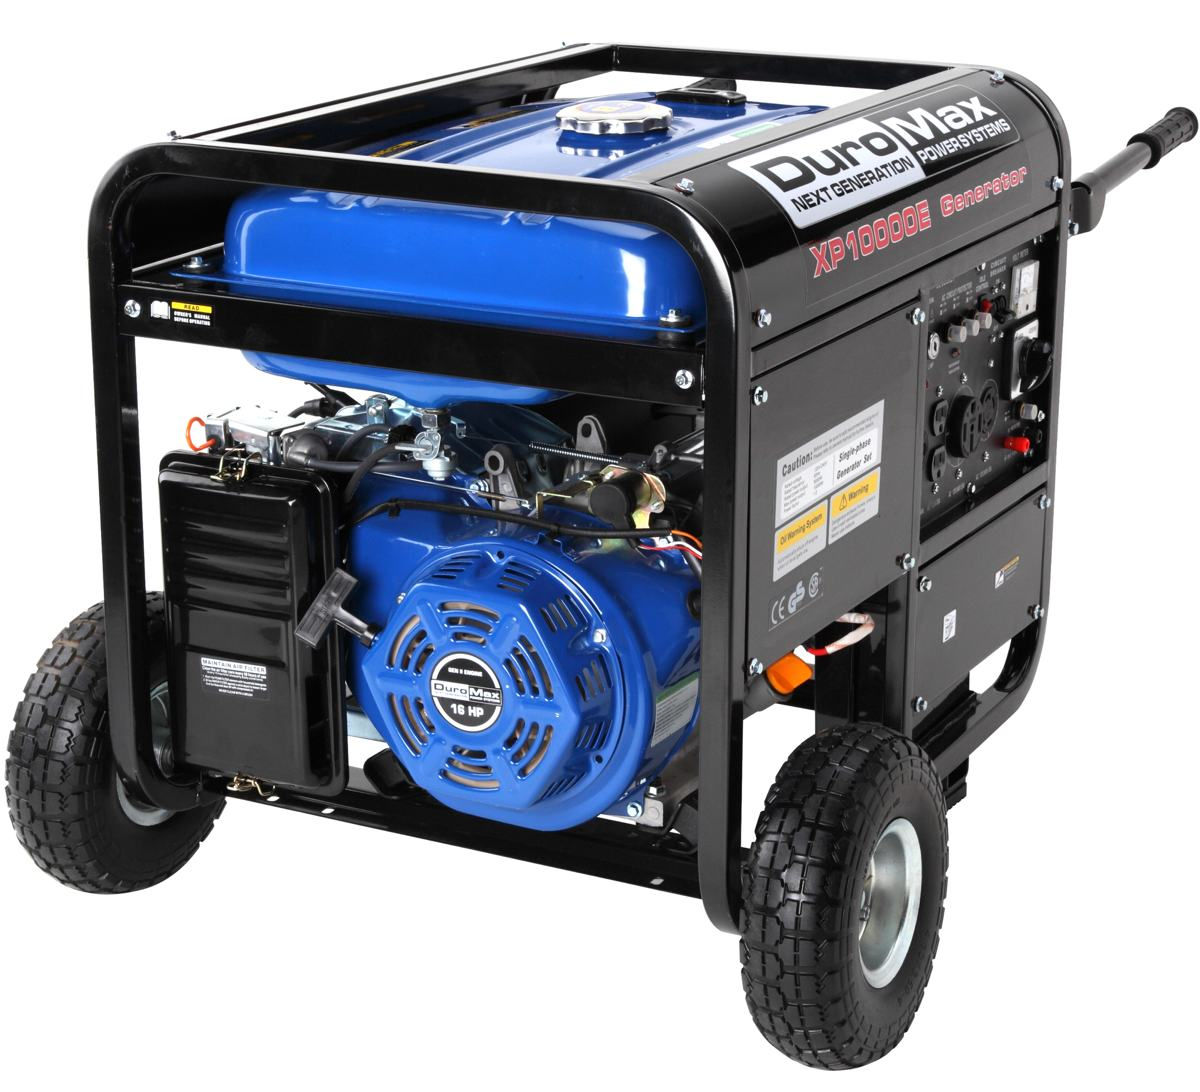 DuroMax XP10000E 10,000 Watt 16 HP OHV 4-Cycle Gas Powered Portable